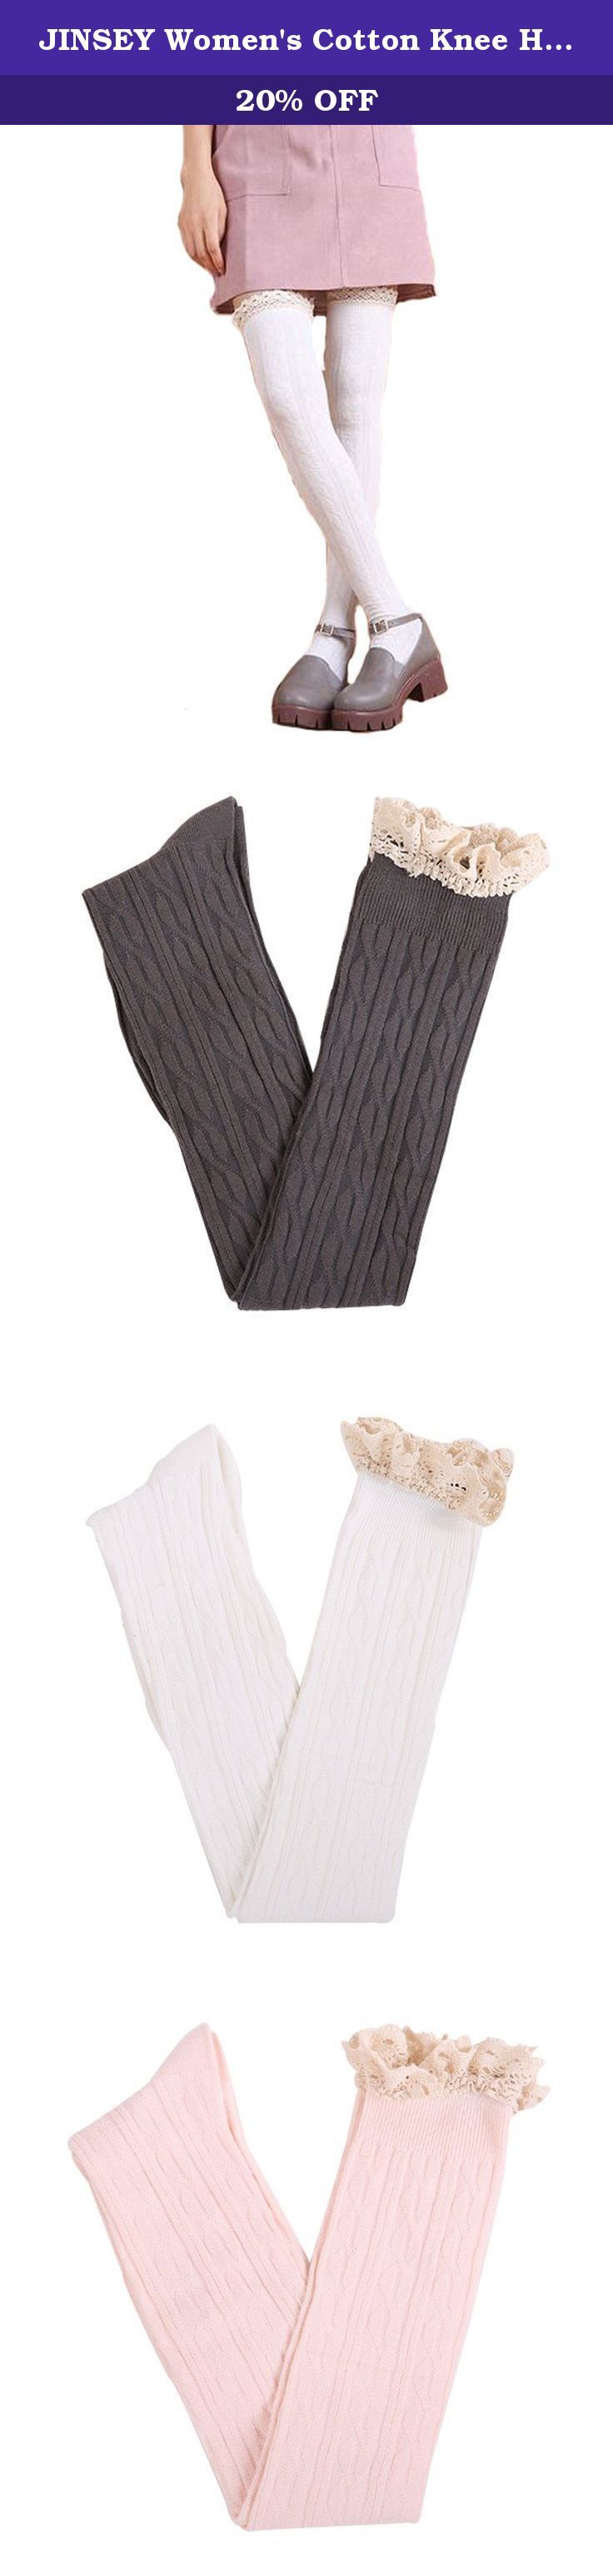 JINSEY Women's Cotton Knee High Button Lace Boot Socks. Pack of 3 pair. Cotton. Lcse Top Over The Knee Long High Boot Socks. Absorb sweat, shaping, deodorization, anti friction, breathable. Over the knee socks that stay up and stay put. The soft, smooth feel of the fabric and cute design of the thigh highs make them perfect to complete a cute outfit!.